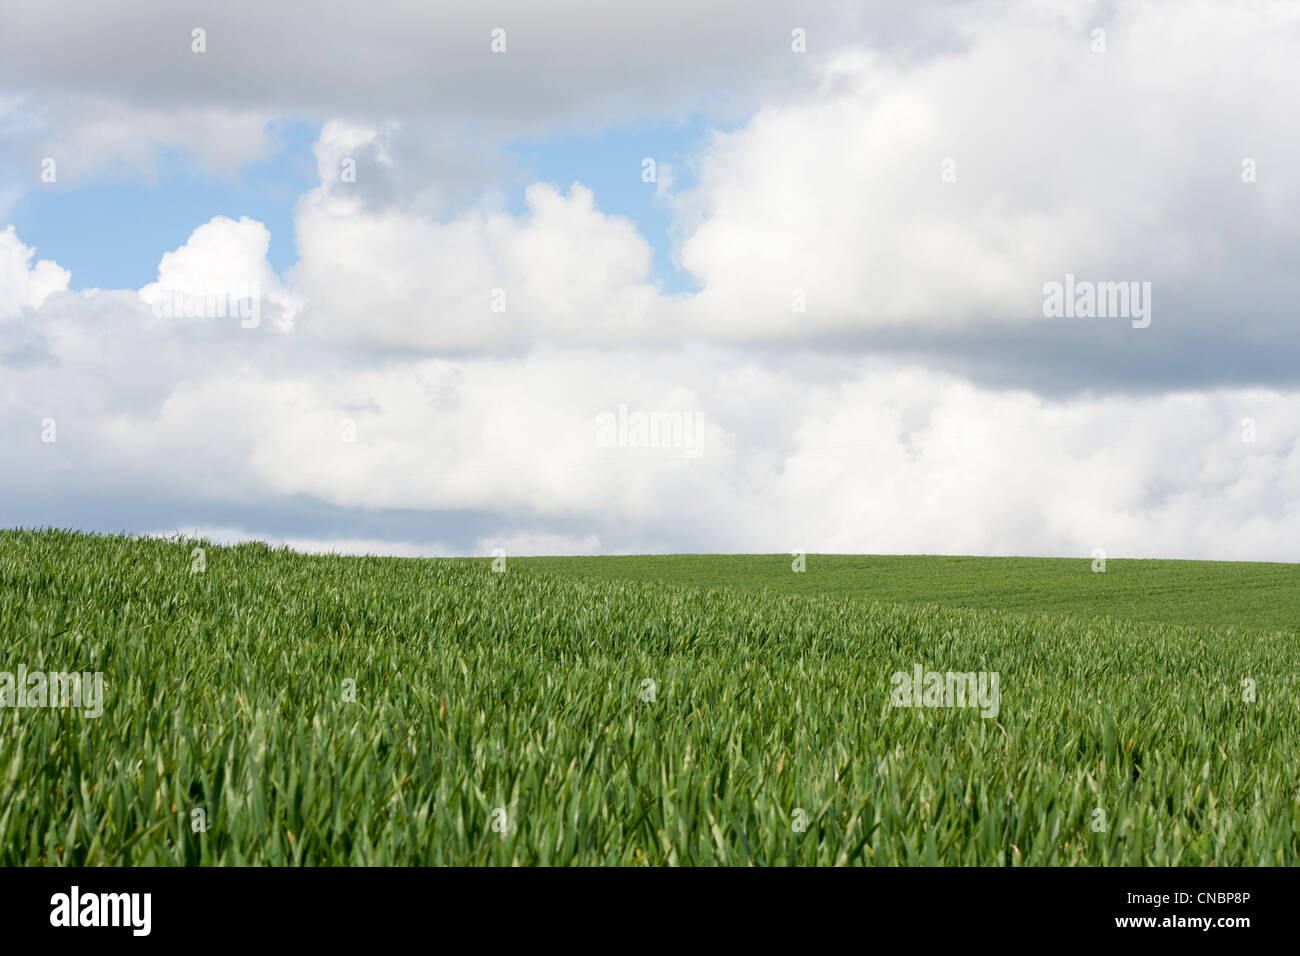 tall green grass field. Landscape Of Field, Tall Green Grass, Blue Sky, White Clouds. Summer Or Spring Scene, English Countryside. Copy Space No People. Grass Field I